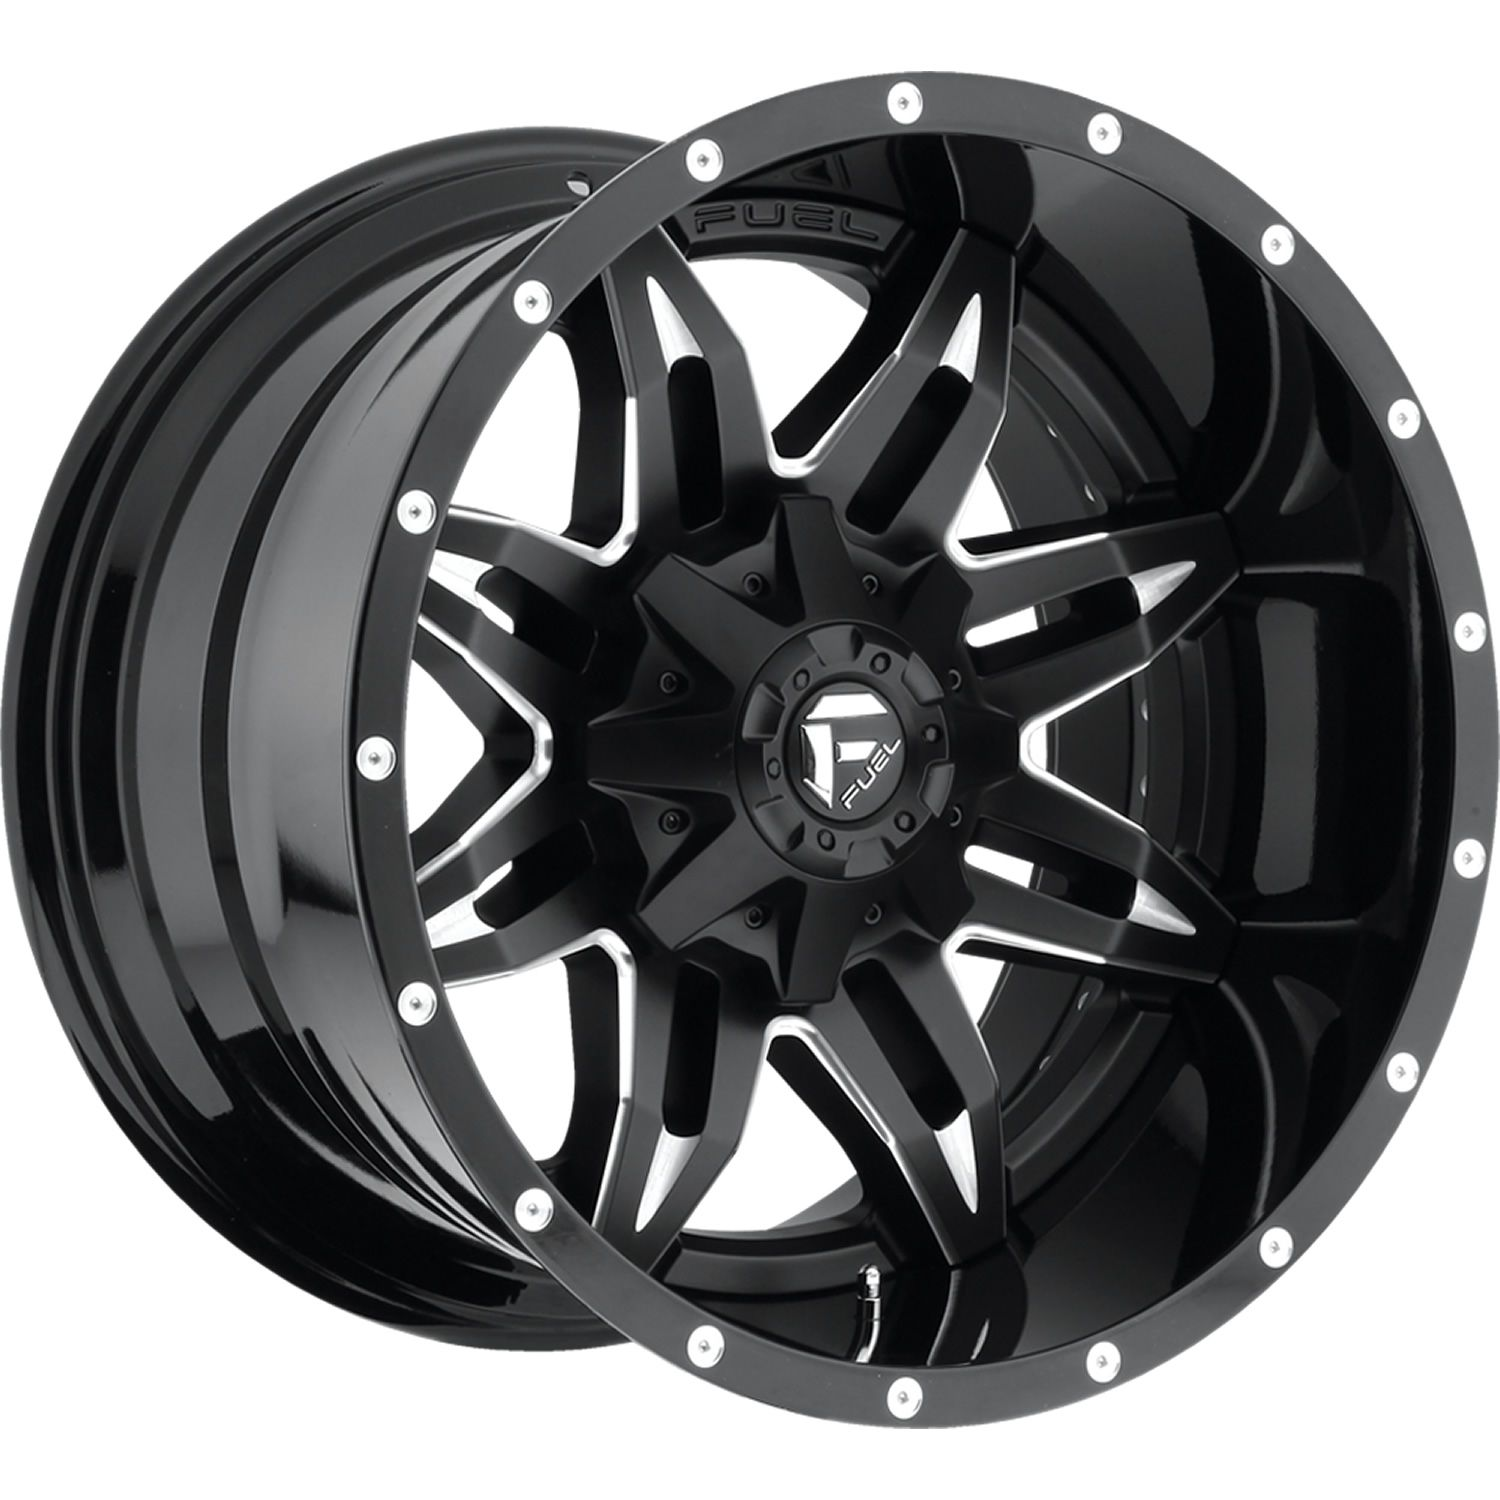 18x9 Black Fuel Lethal D567 8x6 5 1 Wheels Federal Couragia MT 35X12